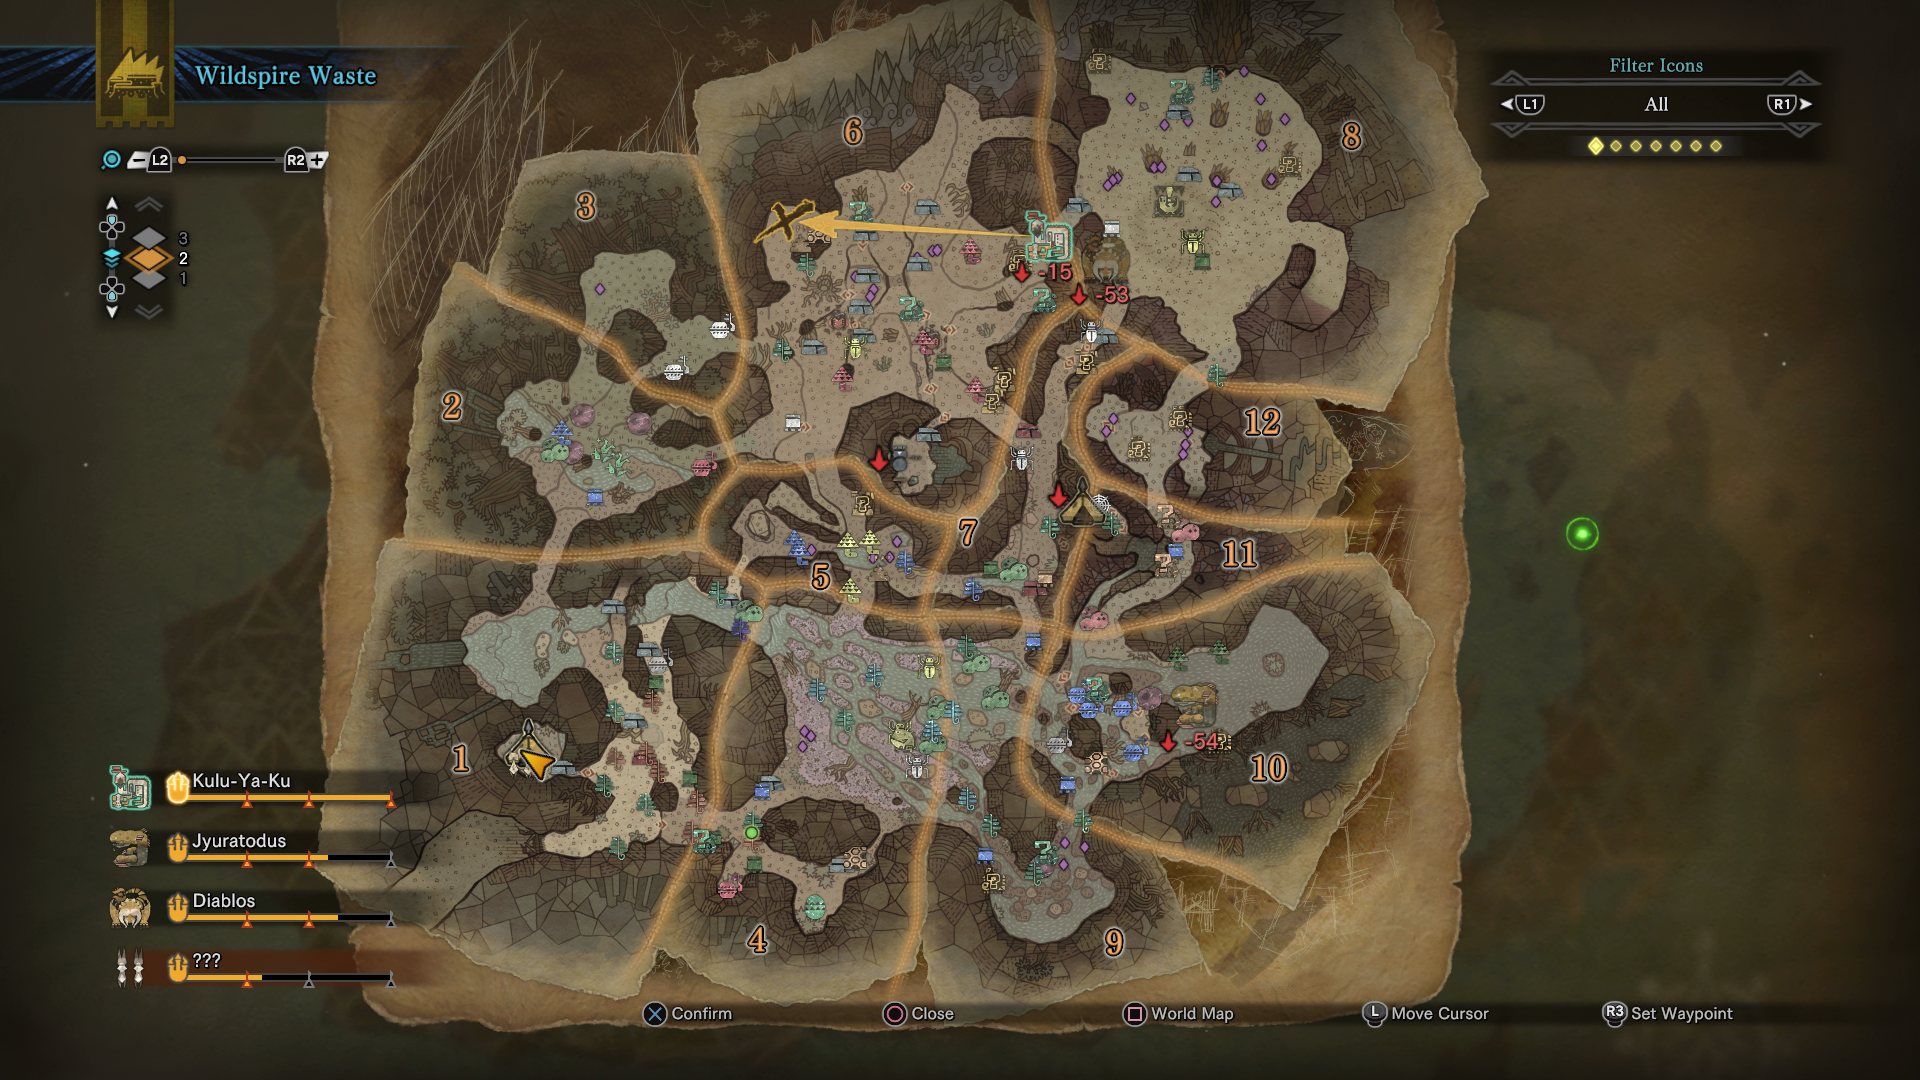 Monster hunter world wildspire waste guide complete map overview alternatively you can head east from area 1 coming to areas 4 9 and 10 all of which contain swampy areas where the jyuratodus can often be found gumiabroncs Image collections